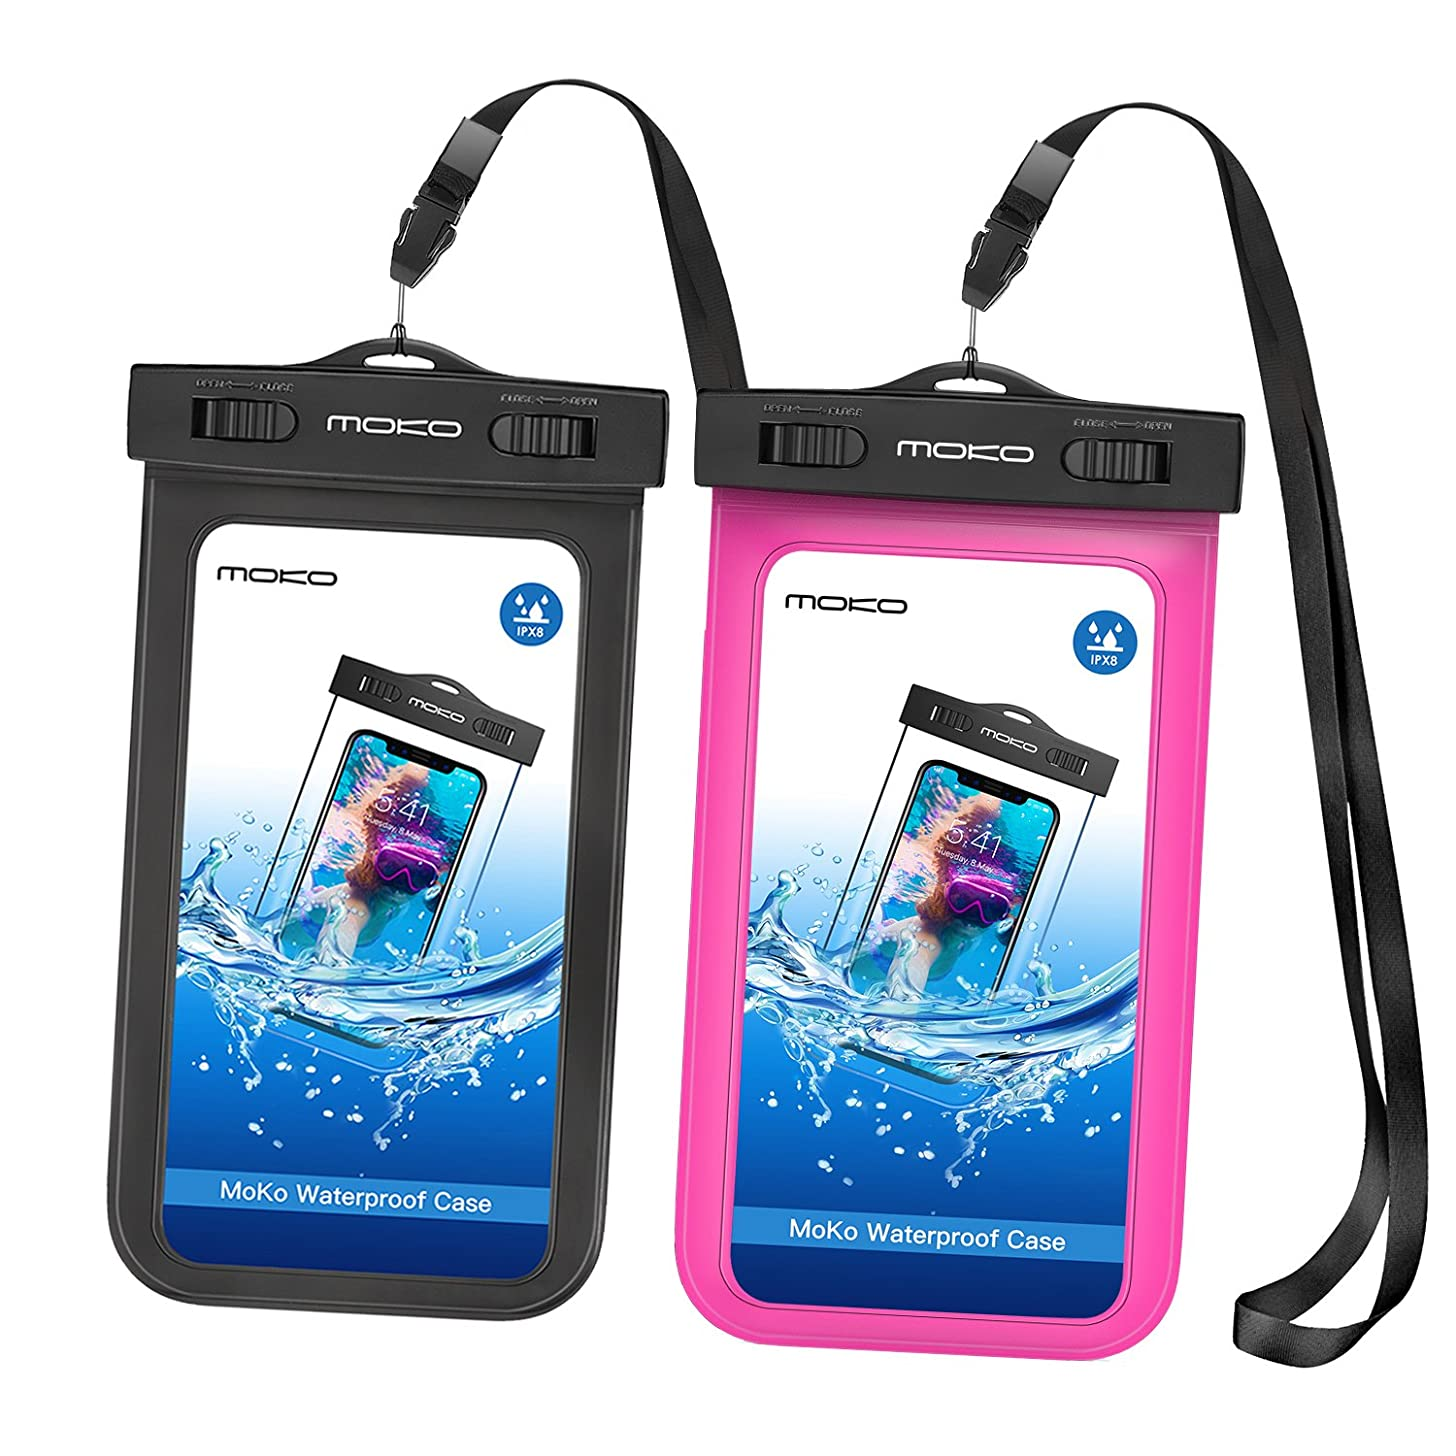 MoKo Waterproof Phone Pouch [2 Pack], Underwater Waterproof Cellphone Case Dry Bag with Lanyard Armband Compatible with iPhone X/Xs/Xr/Xs Max, 8/7/6s Plus, Samsung S10/S9/S8 Plus, S10 e, Up to 6.5